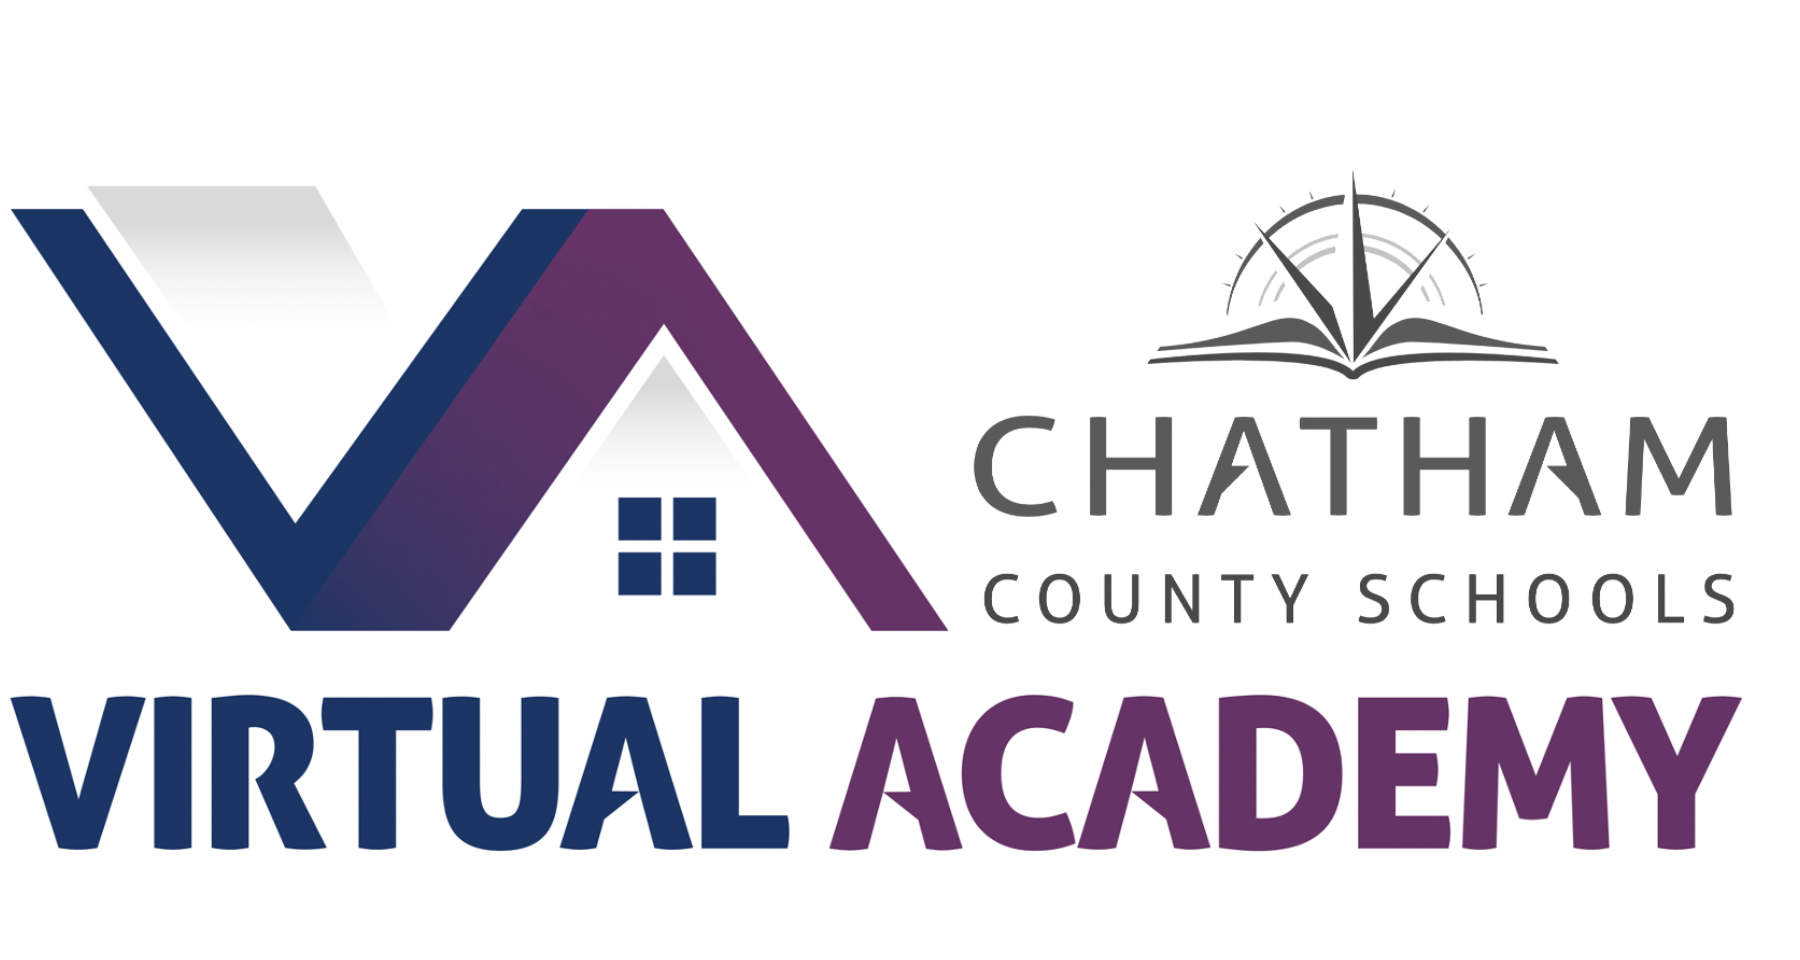 NOW ENROLLING: District accepting applications for virtual academy